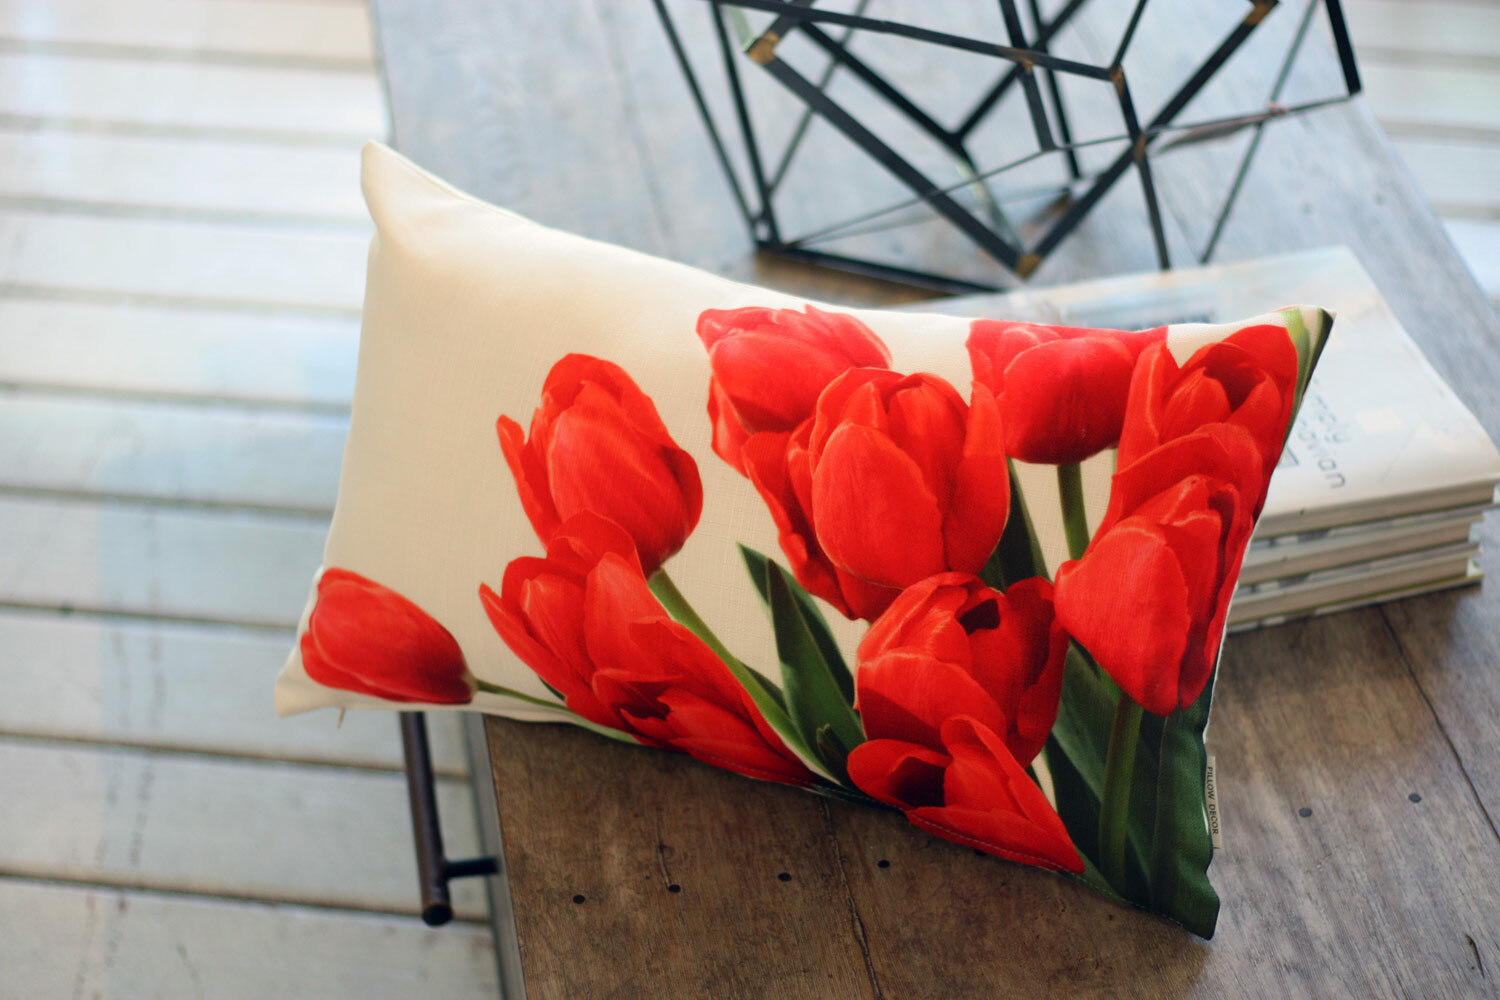 Fresh Trends in Throw Pillows: Incorporating Florals into Your Home